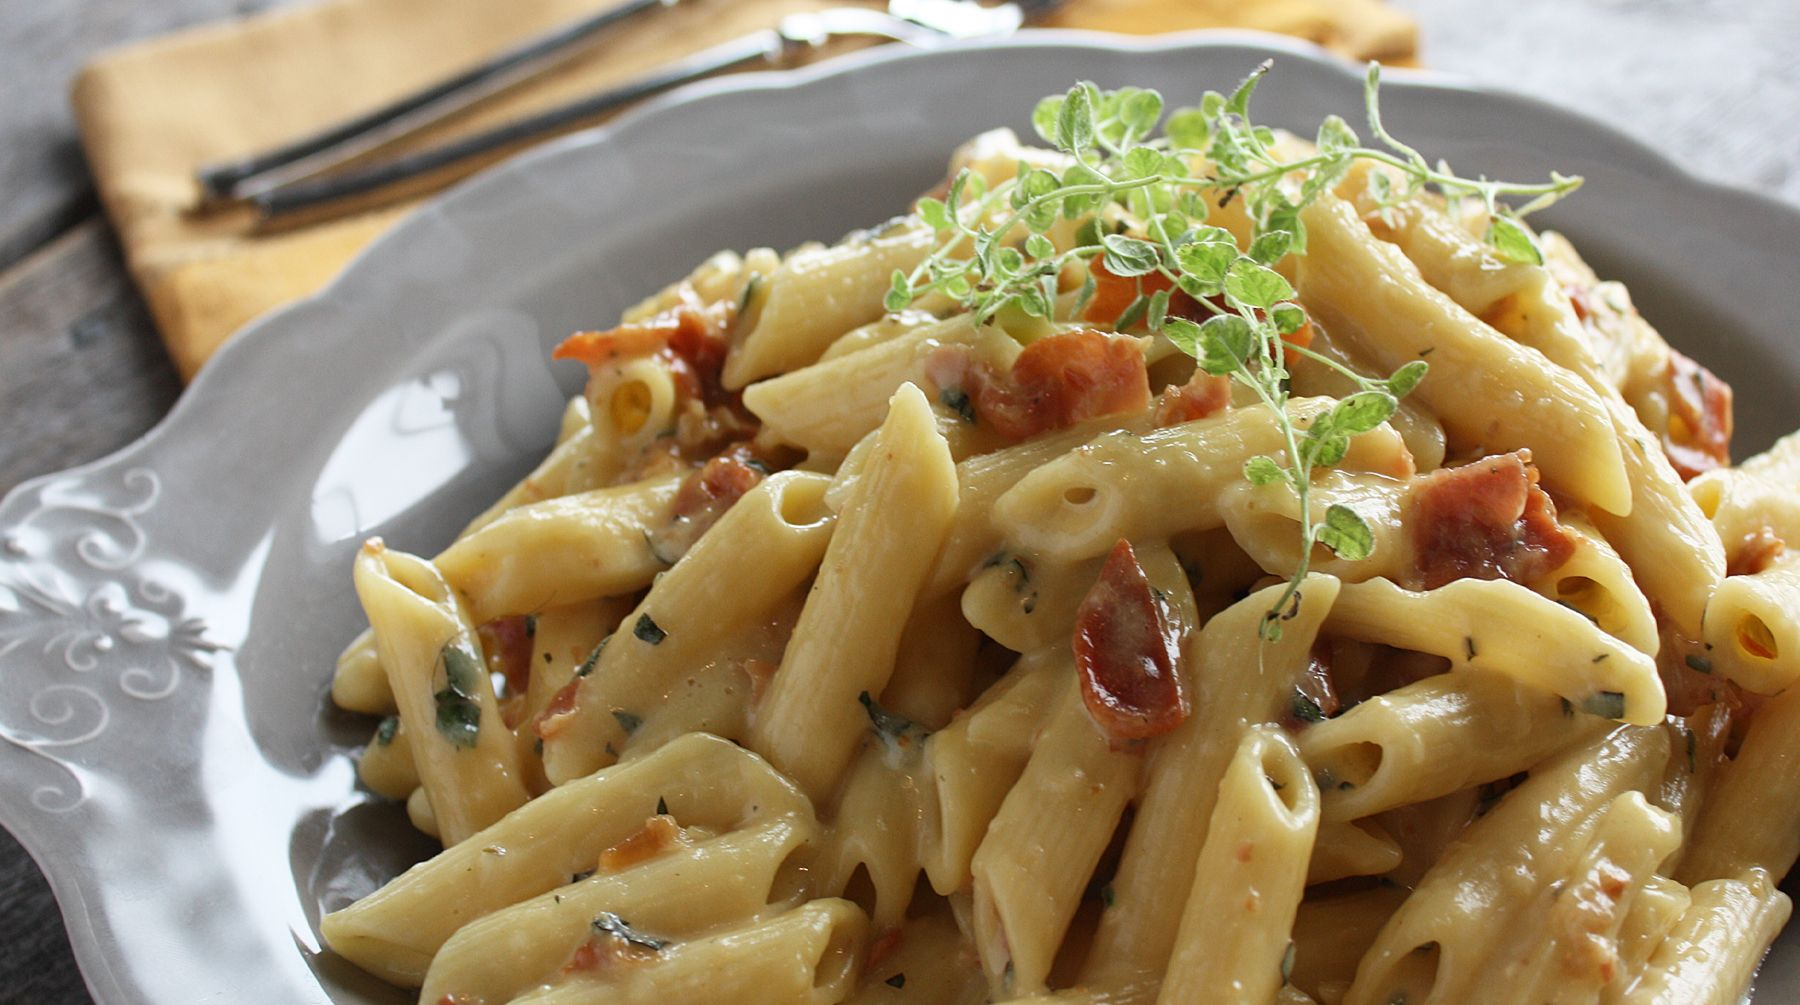 Try this quick and easy pasta carbonara recipe by michael smith from get delicious asian recipes cooking tips and healthy food from anna olson sarah benjamin gordon ramsay sherson and more only at asian food channel forumfinder Images